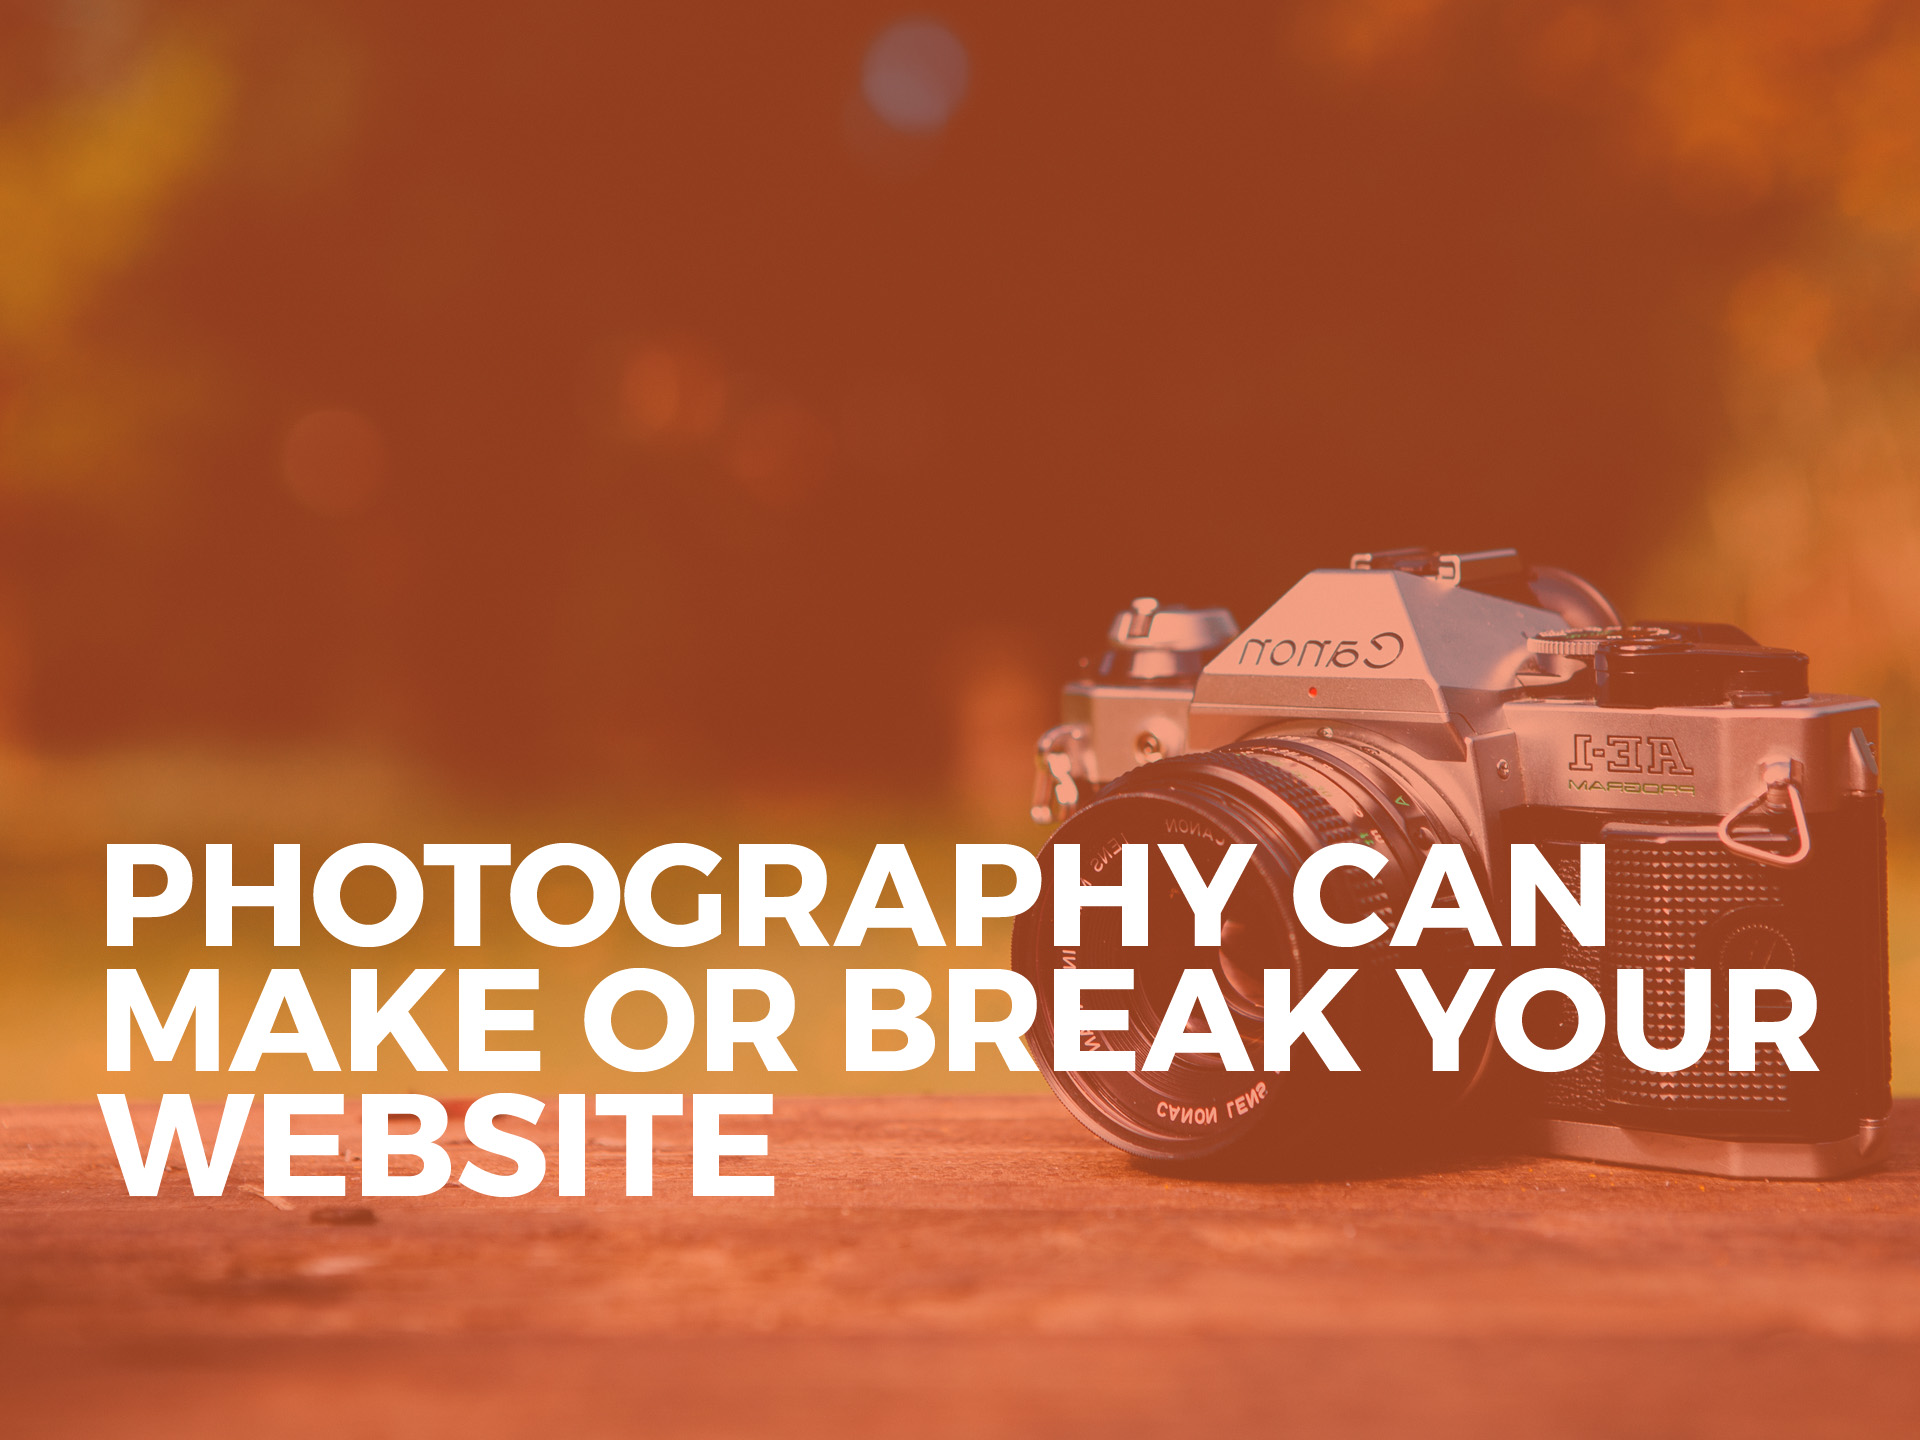 photography can make or break your website